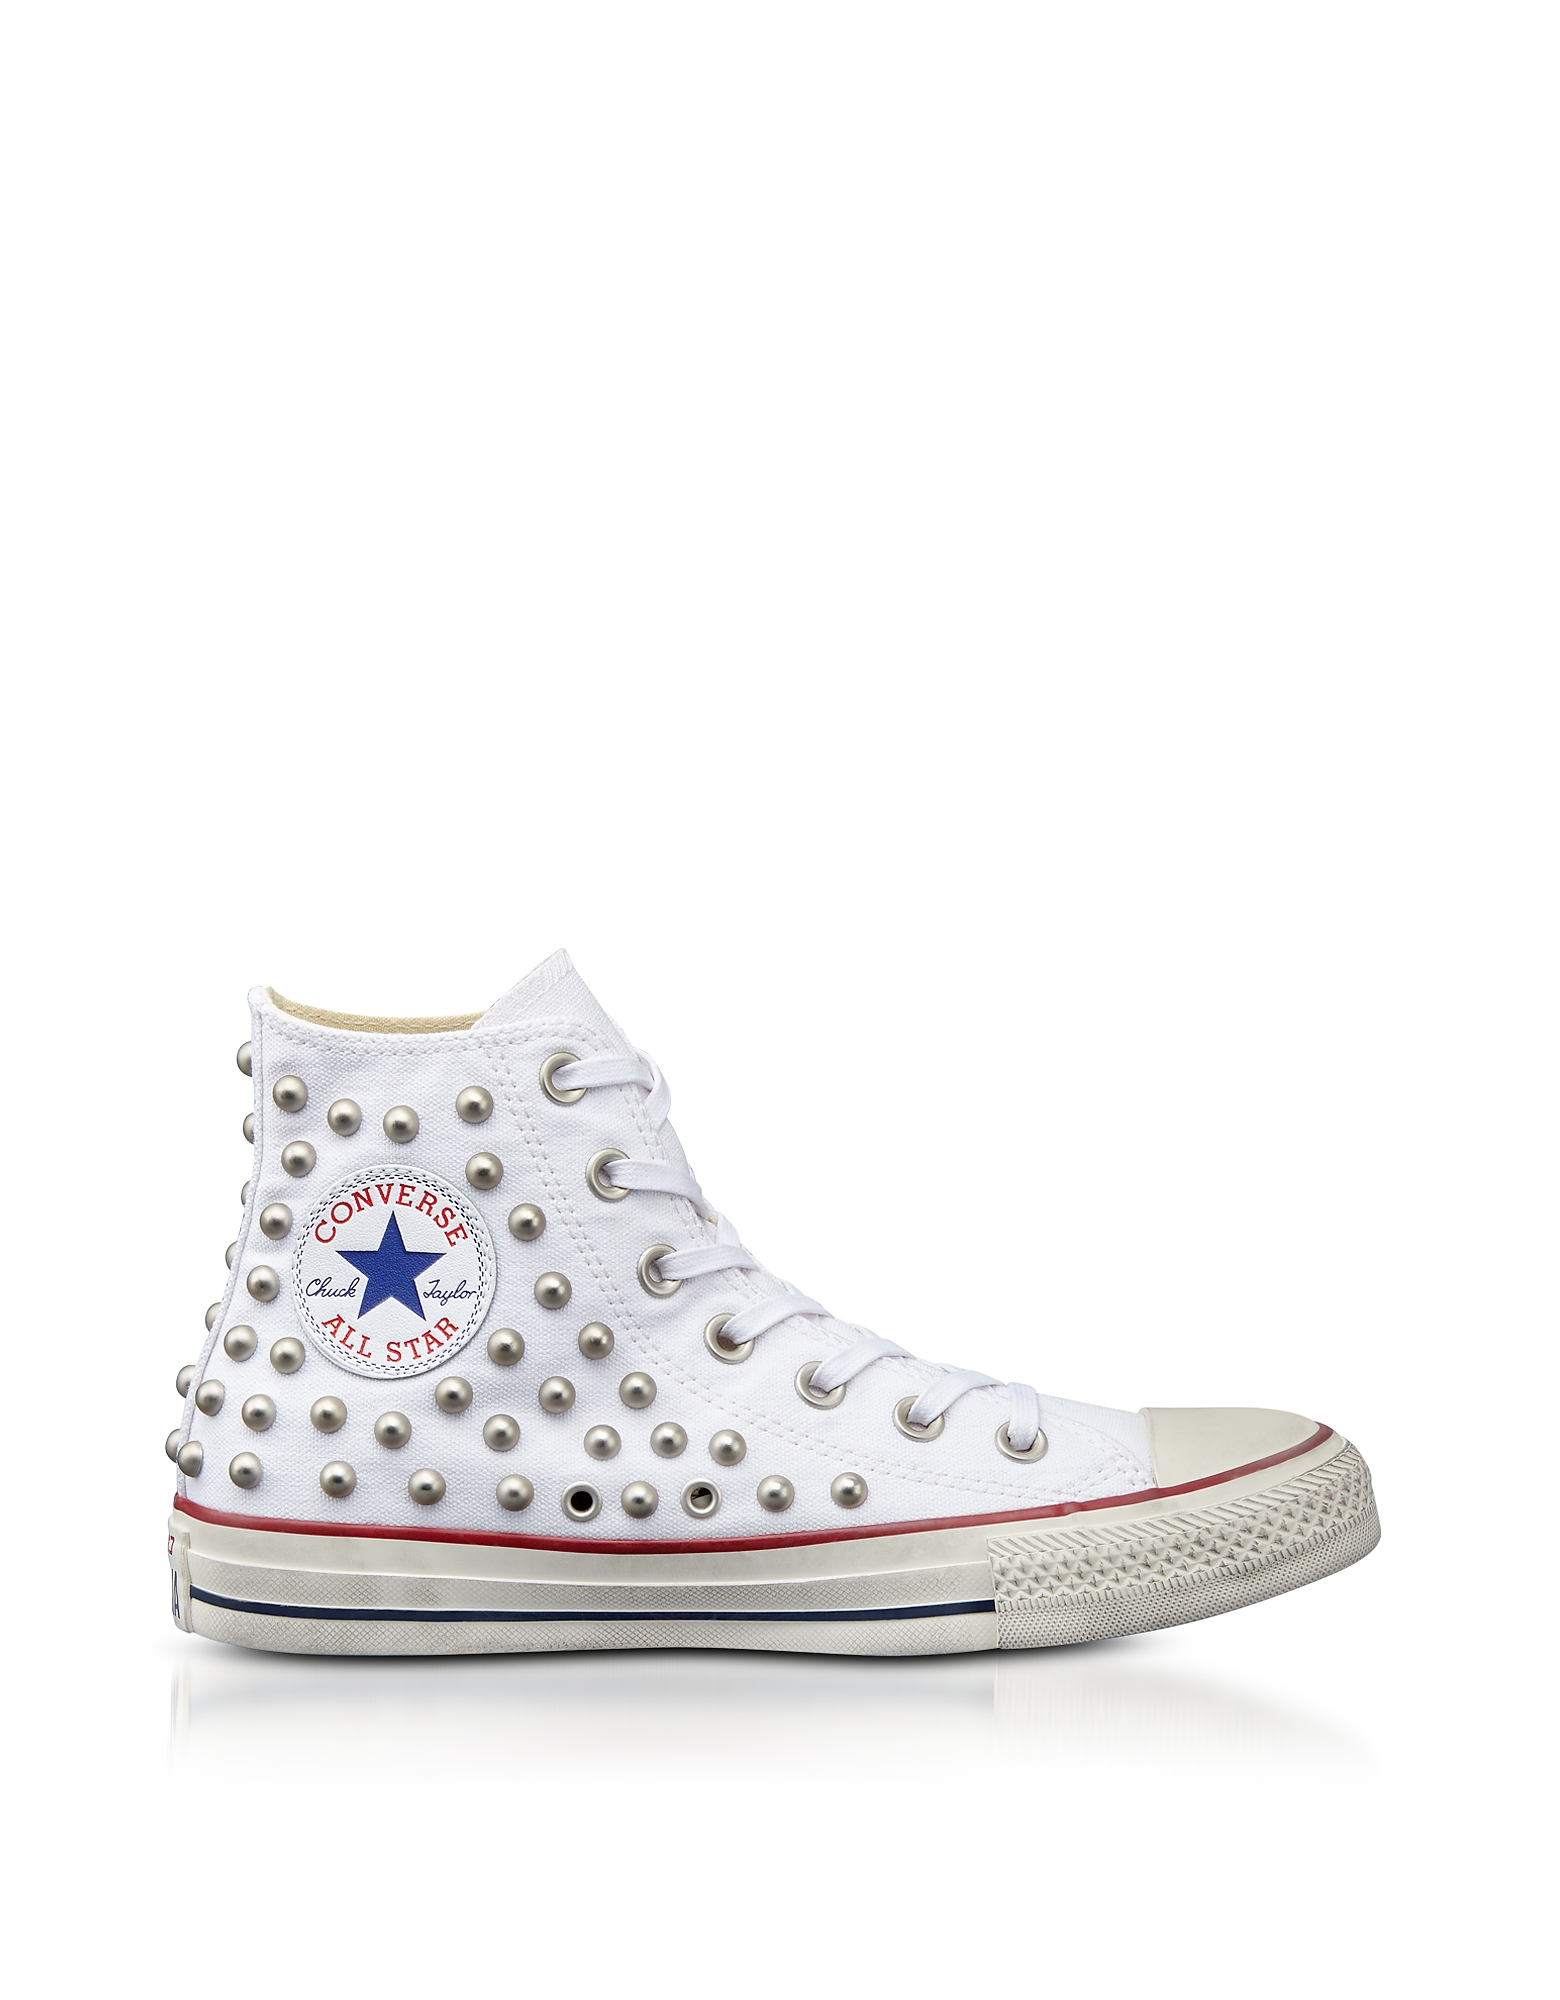 Converse Limited Edition Shoes, Chuck Taylor All Star High White Studded Canvas Sneakers